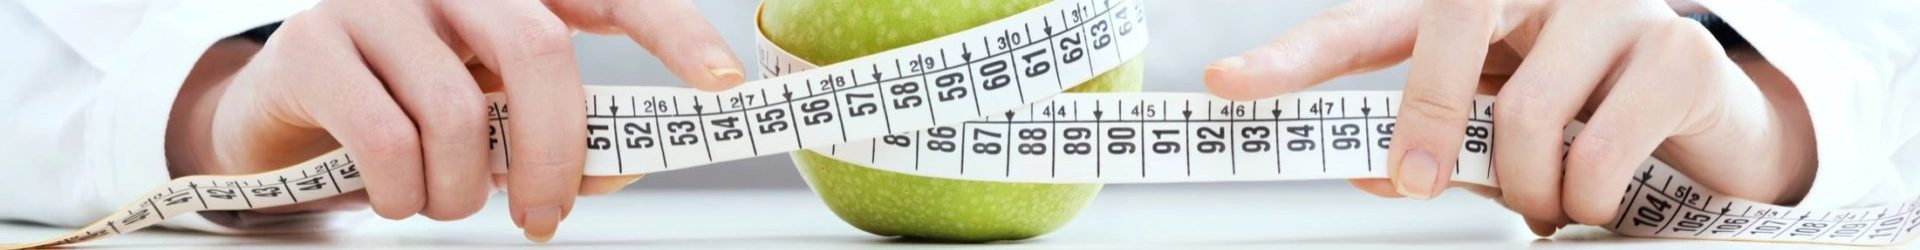 Reading Your Nutrition Label 101: Quick and Easy Tips!